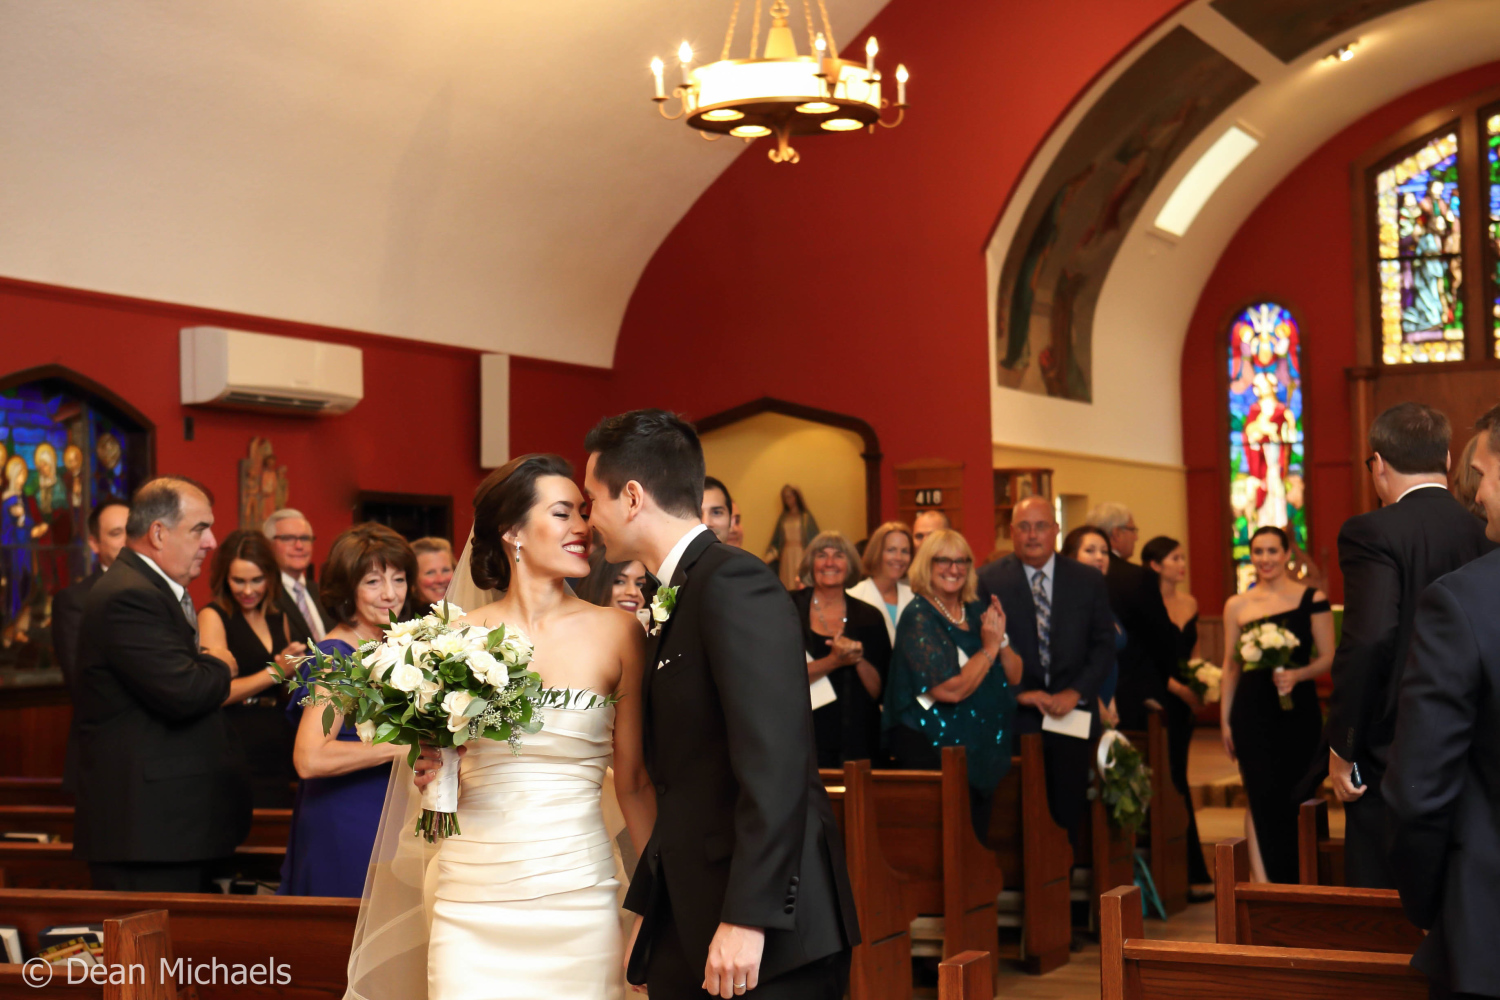 wedding-photographer-gallery-DRSK5H2JIHUL.jpg